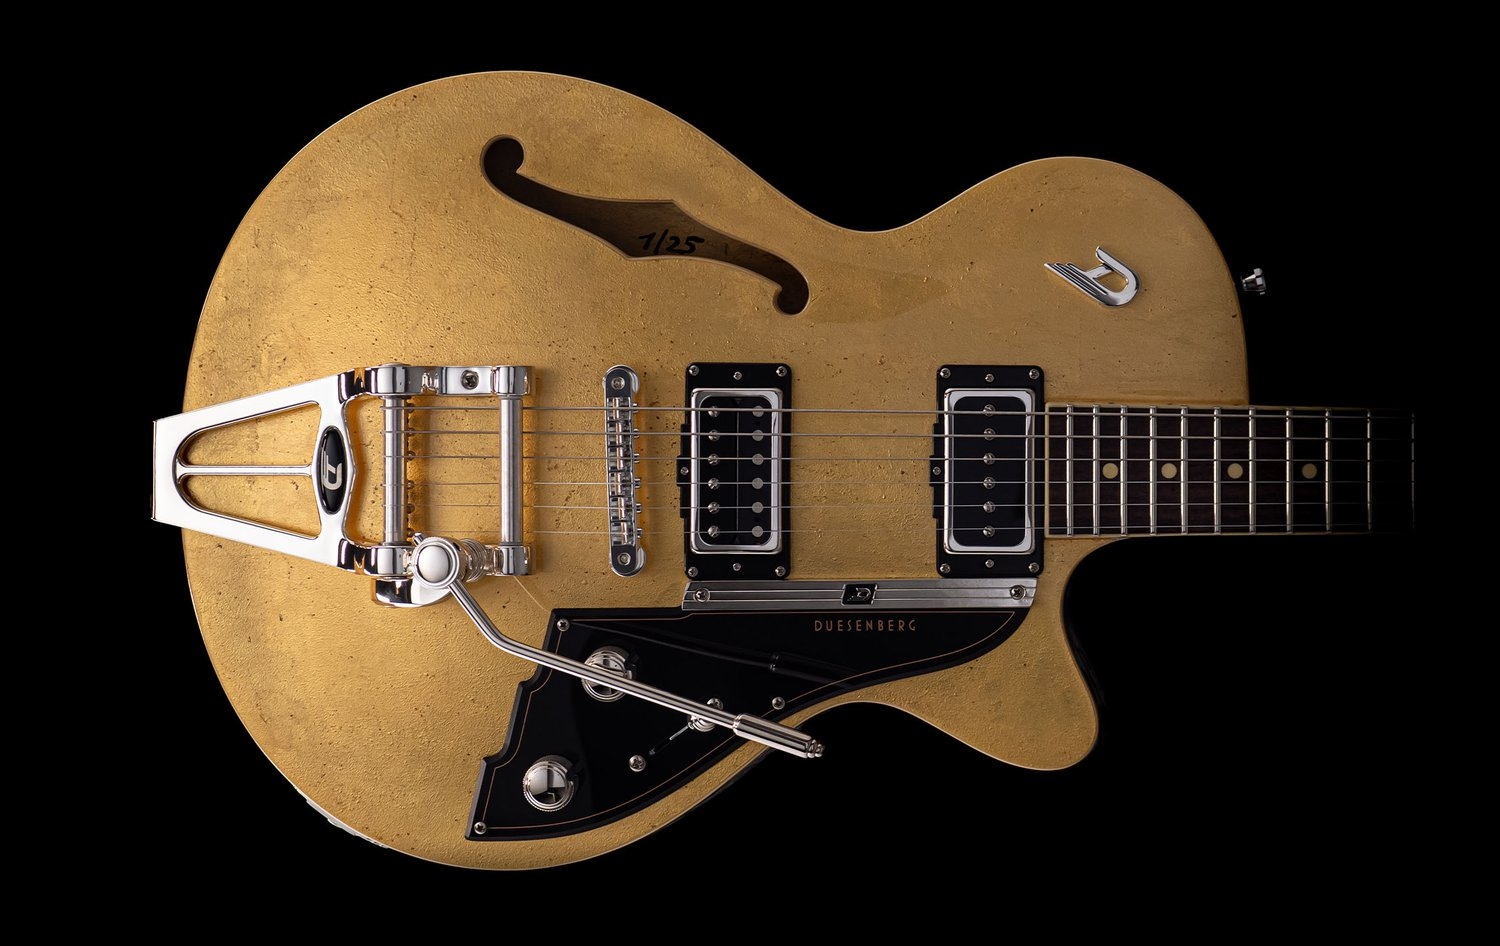 Body shot of the Duesenberg Starplayer TV 25th Anniversary Gold Leaf